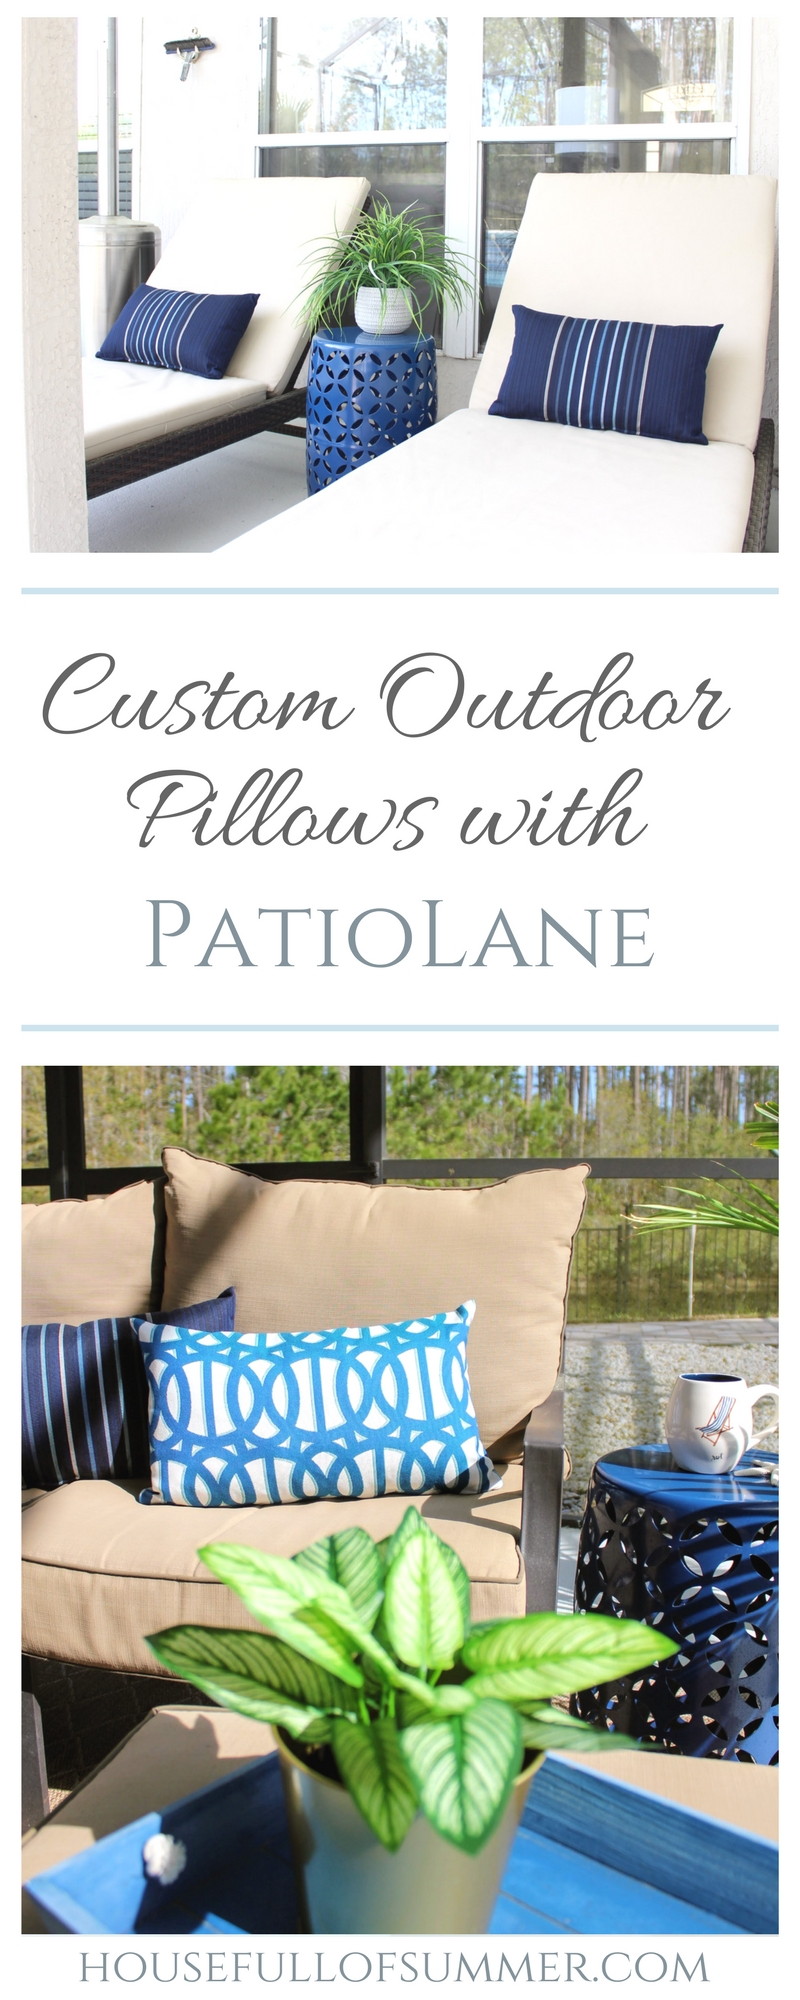 Custom Outdoor Pillows with PatioLane | House Full of Summer outdoor living, patio decor, coastal patio style, lanai, spring patio updates, custom cushion builder, tropical style, florida living, florida backyard design, enclosed pool and patio, navy and white patio. porch decor, palms,